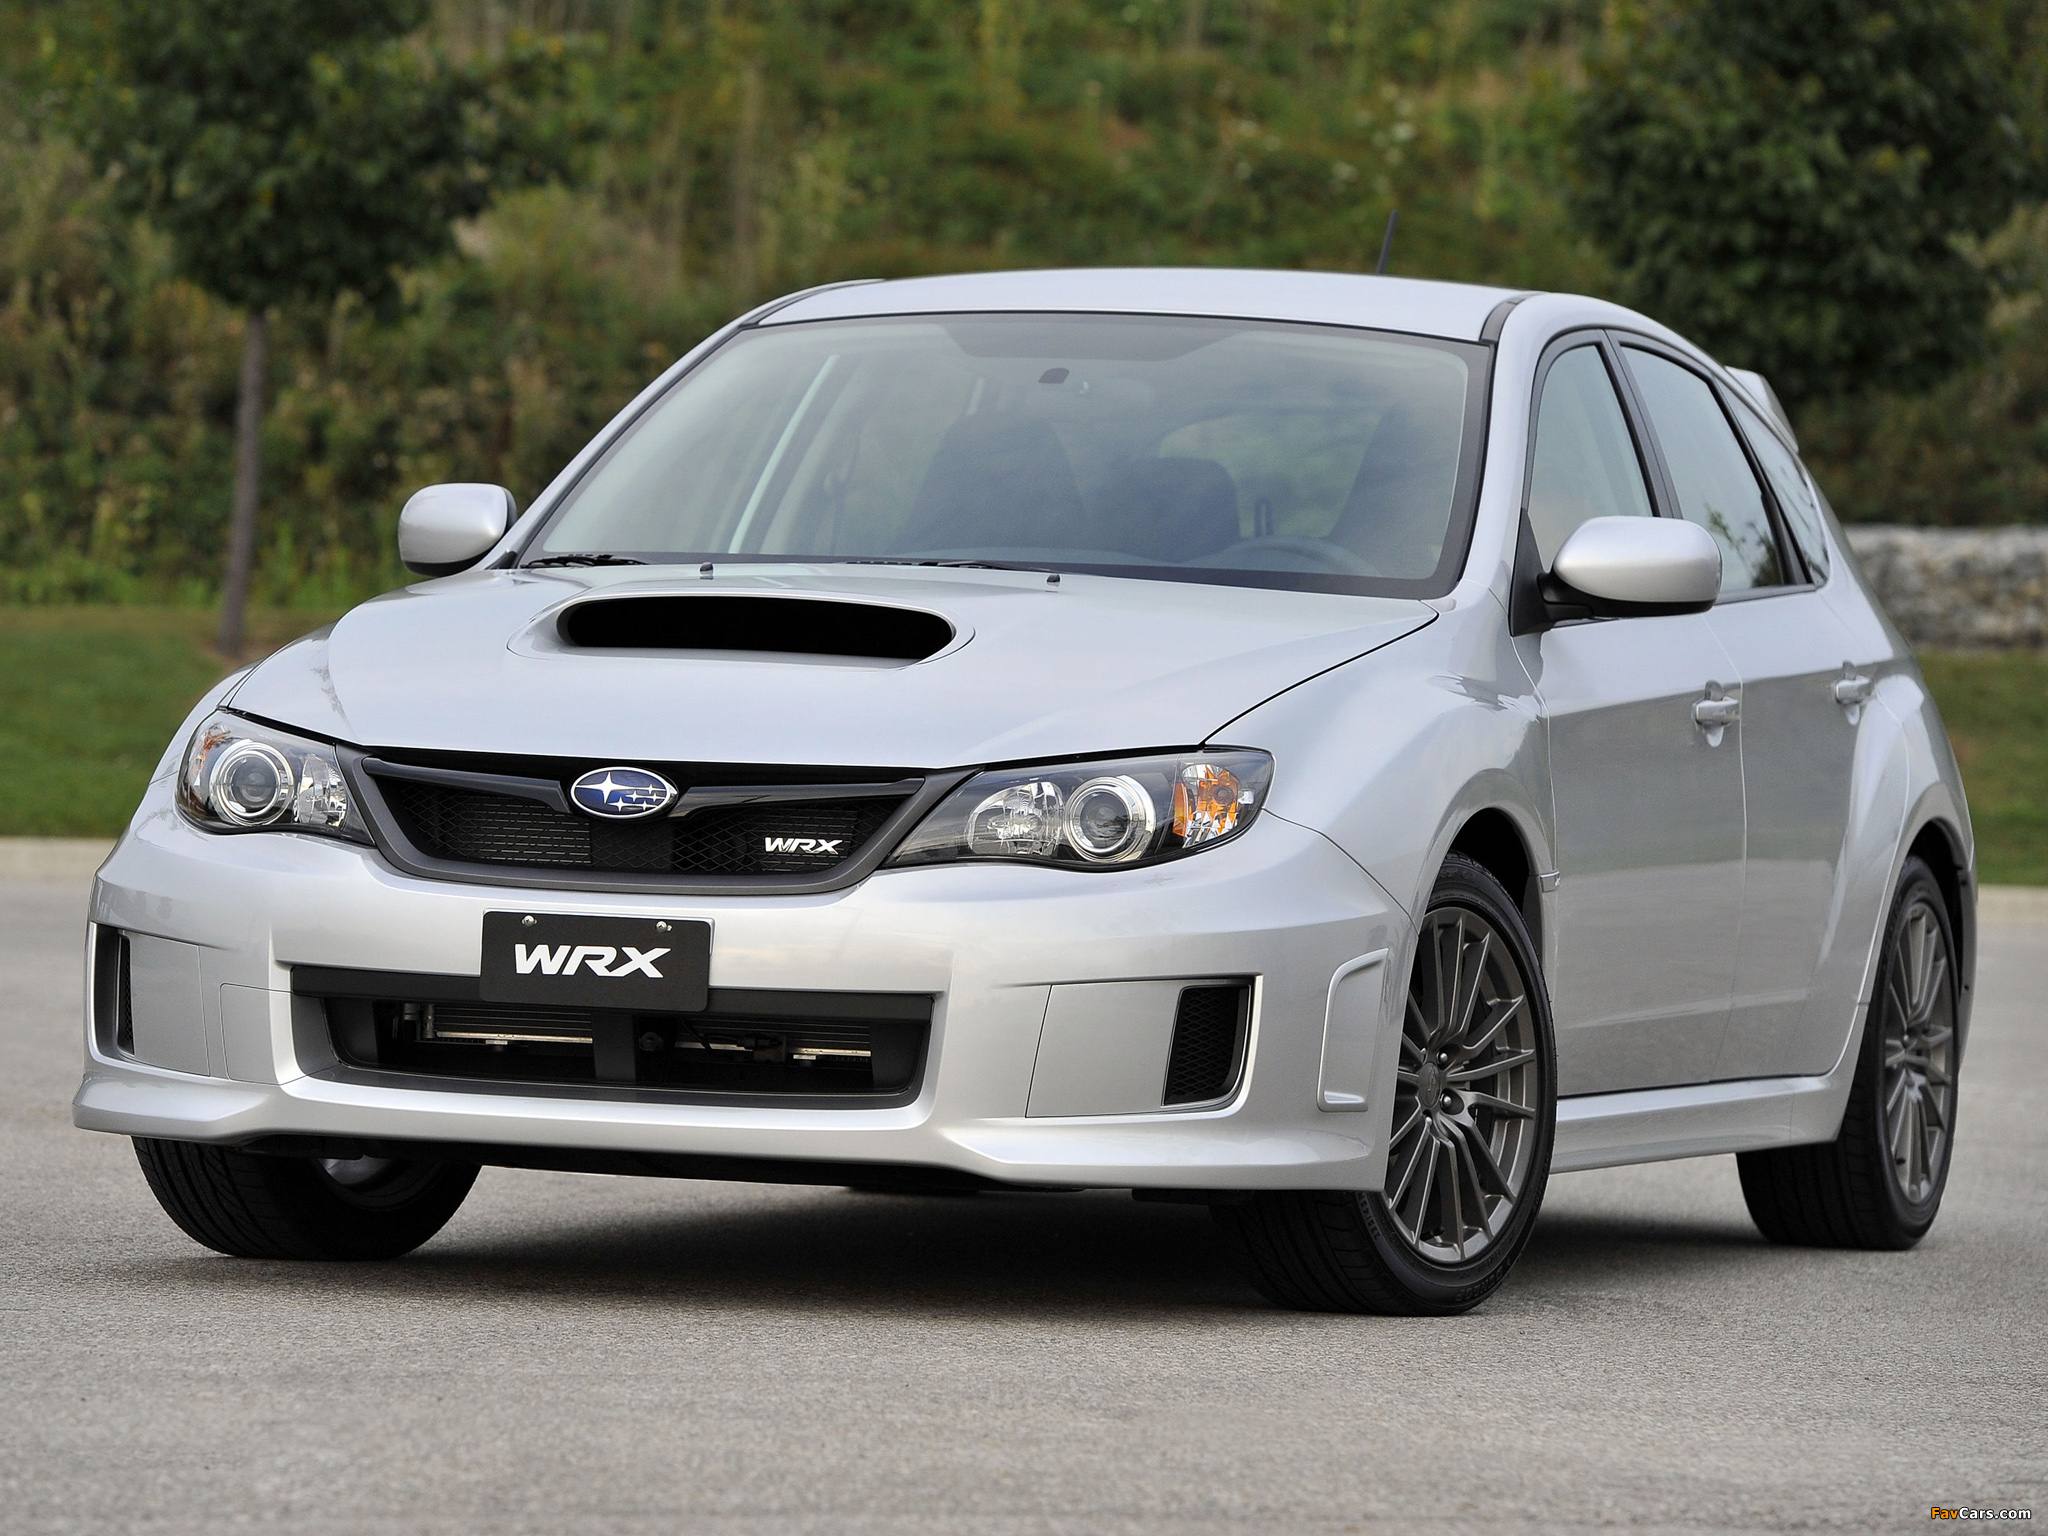 subaru impreza wrx hatchback us spec 2010 wallpapers. Black Bedroom Furniture Sets. Home Design Ideas